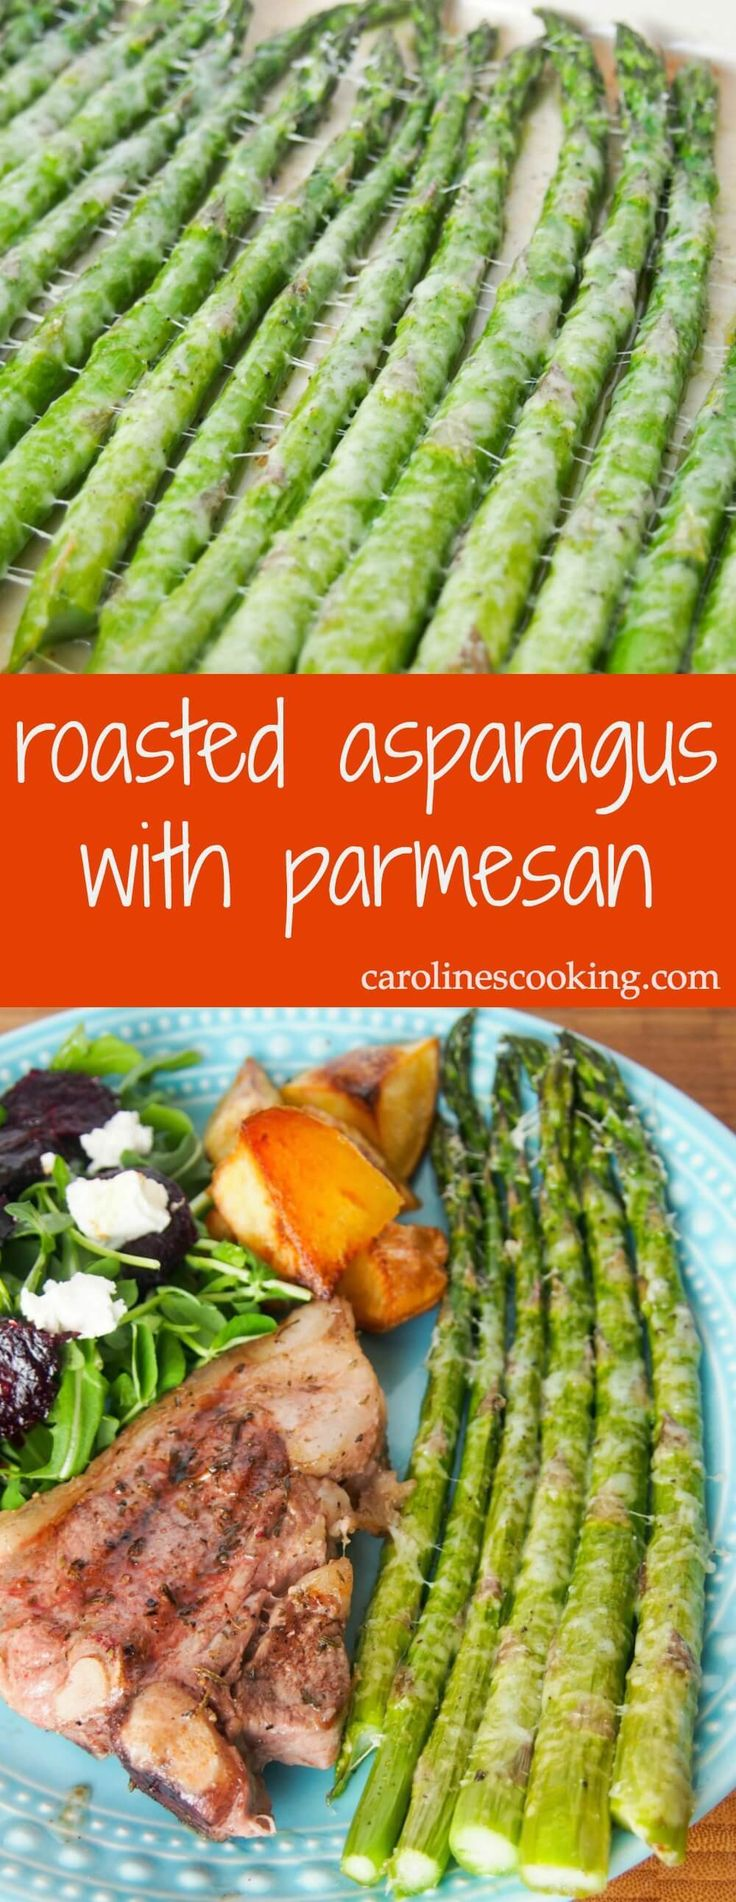 Roasted asparagus with parmesan is an incredibly easy way to prepare asparagus but you'll be amazed at how good it tastes as a result. A great side dish.